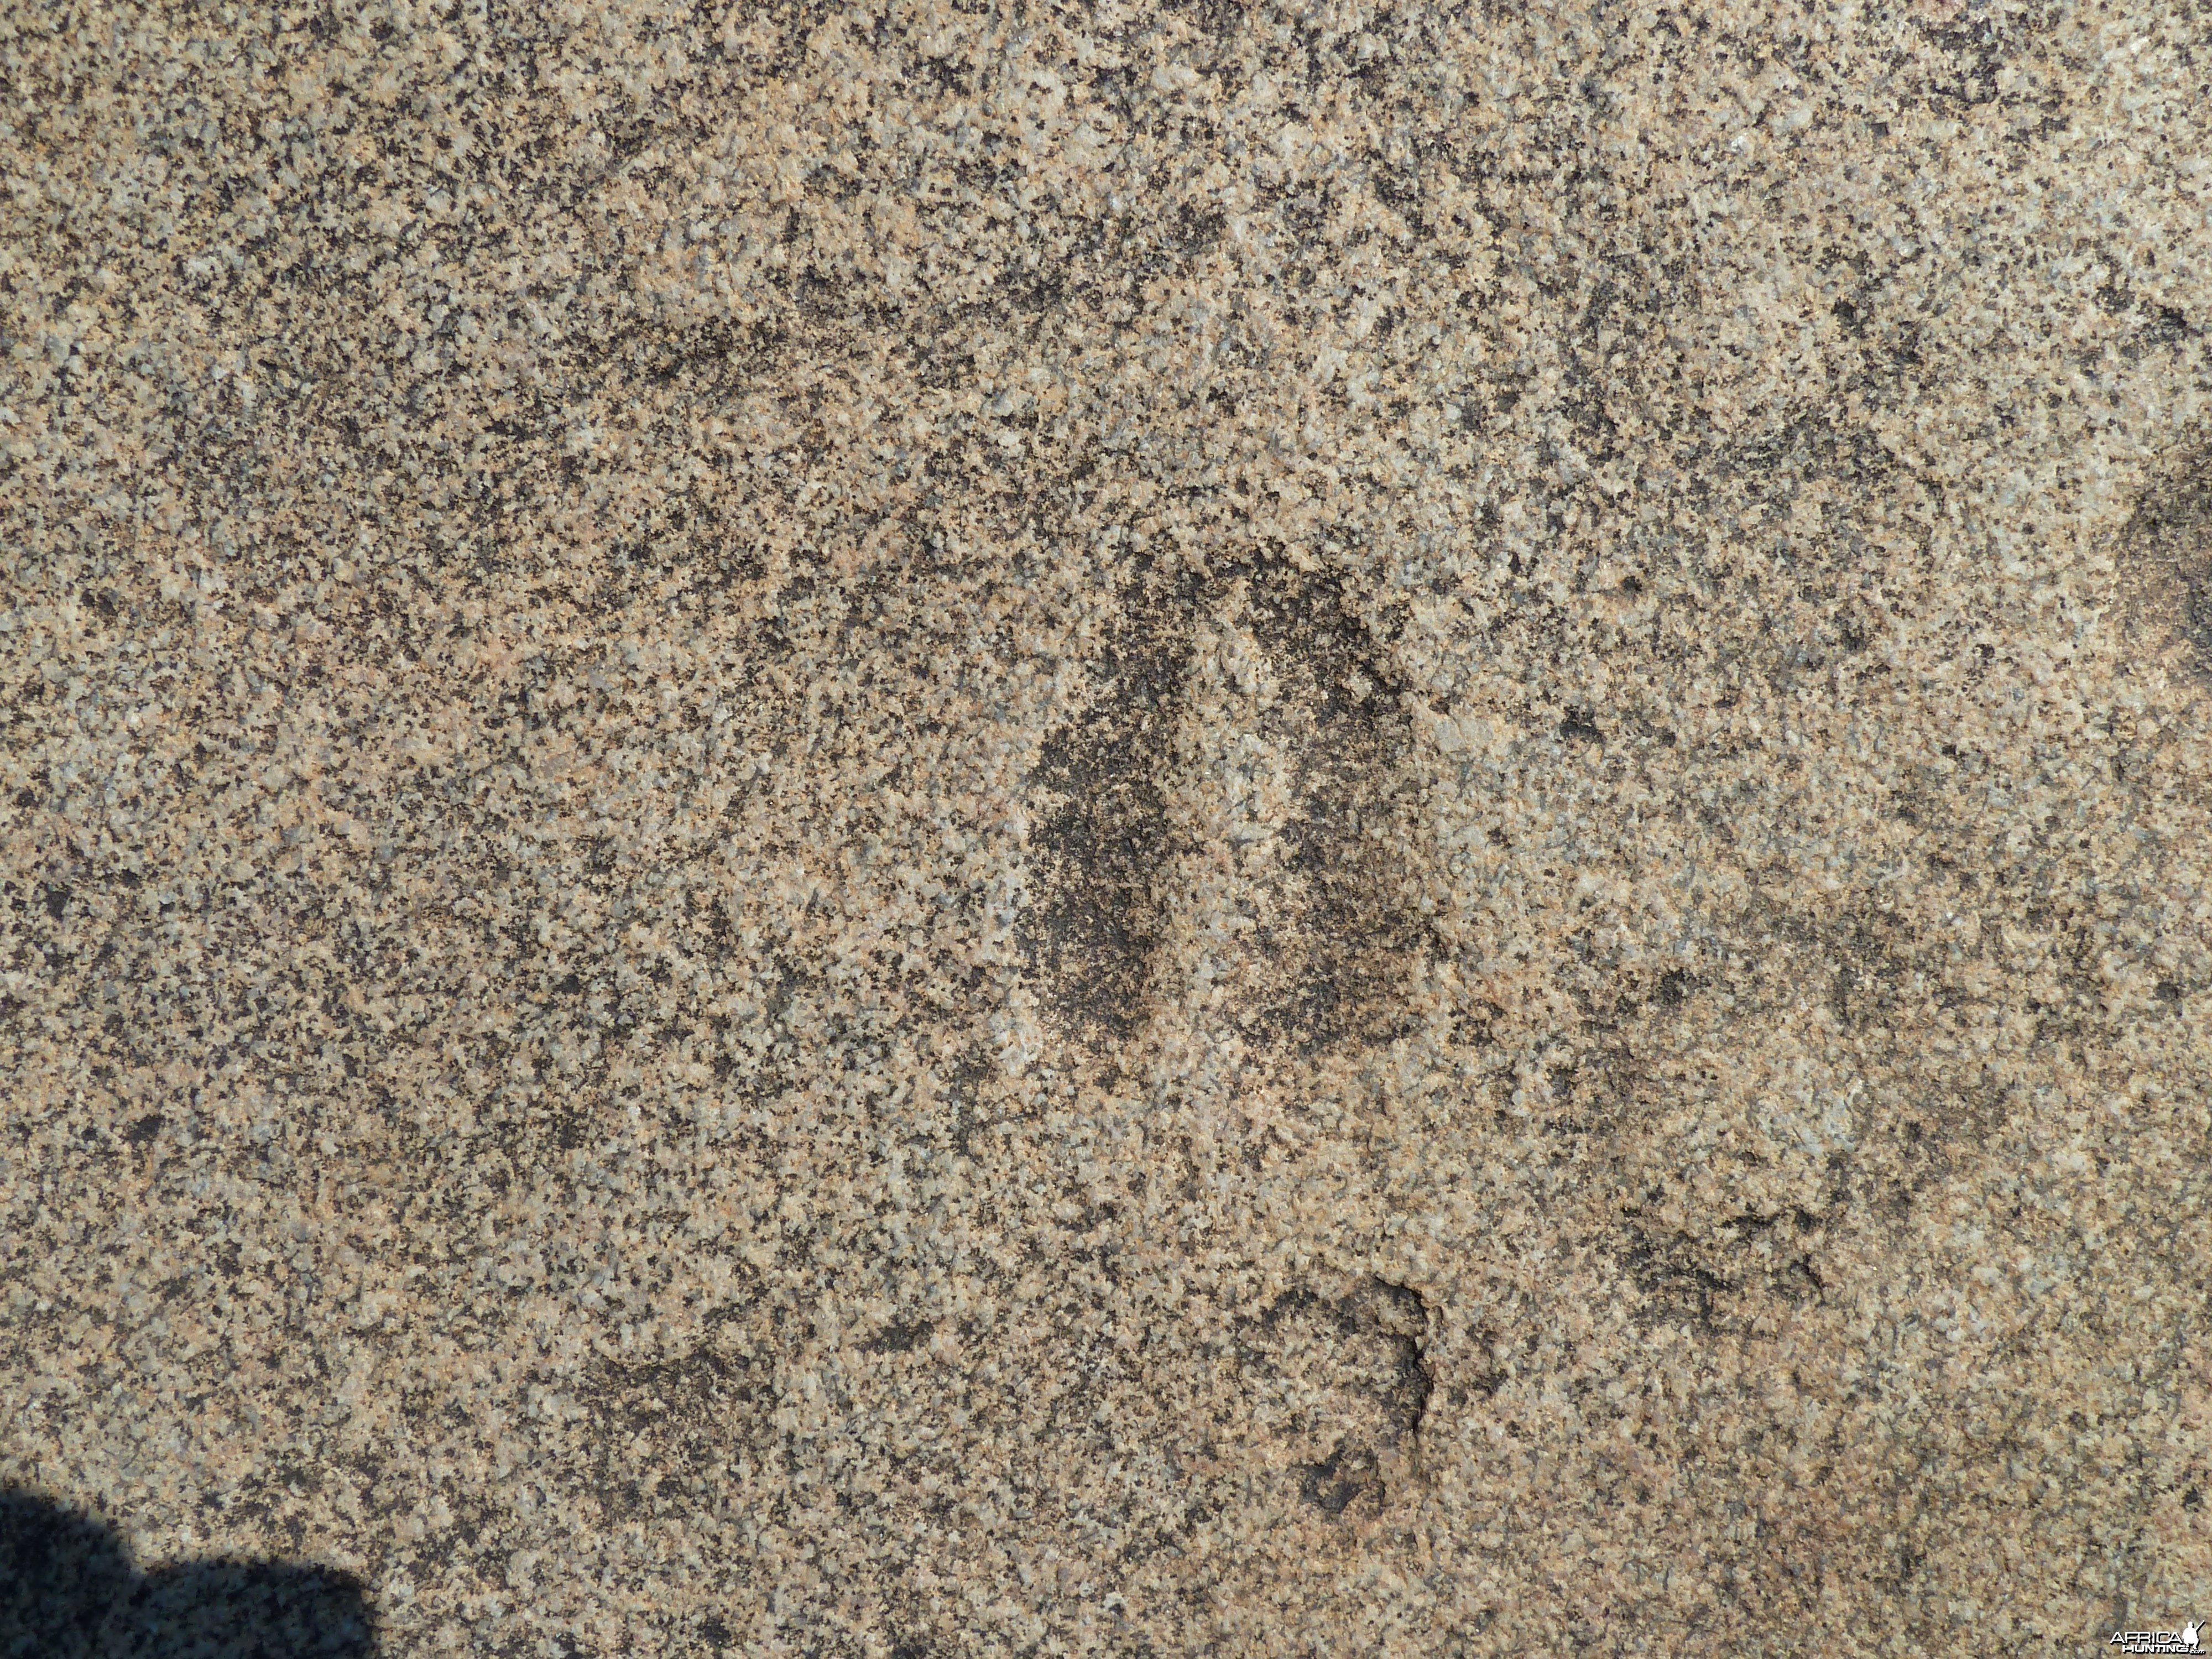 Animal tracks in the rock in Namibia